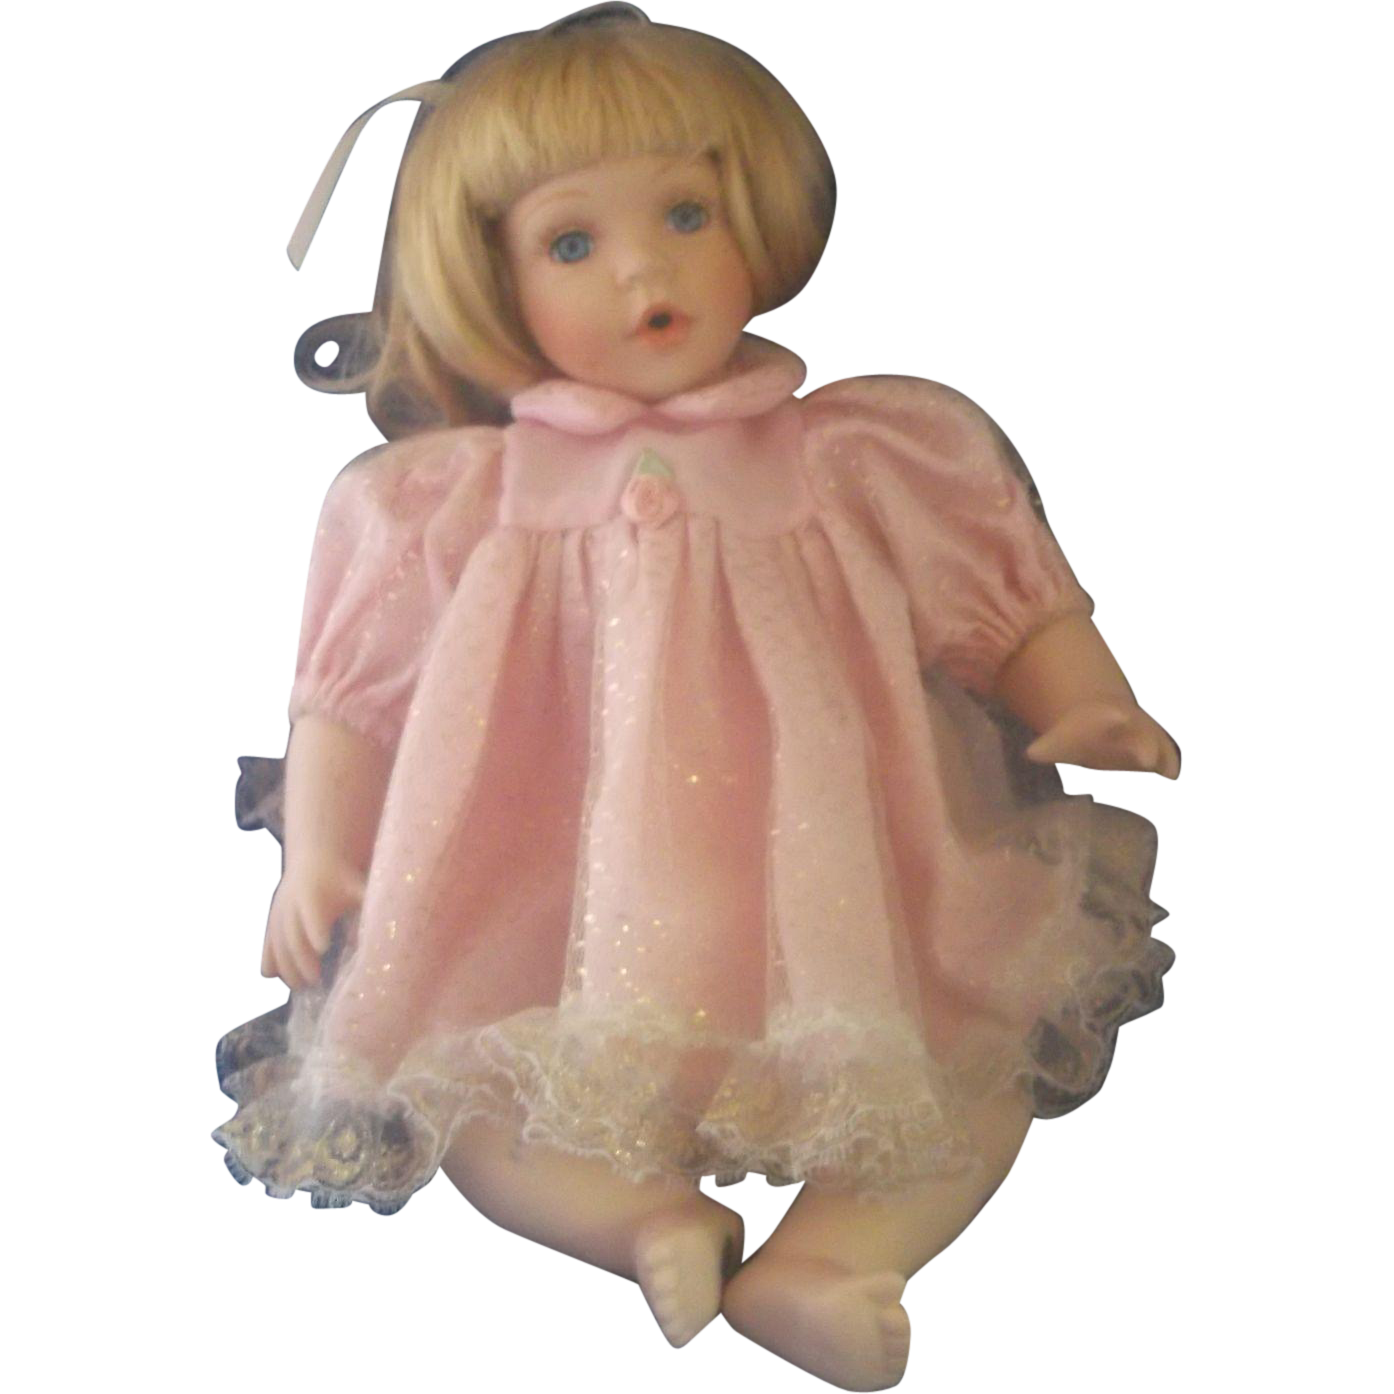 Marian Yu Porcelain Baby Toddler Doll Pink Dress Blonde Hair